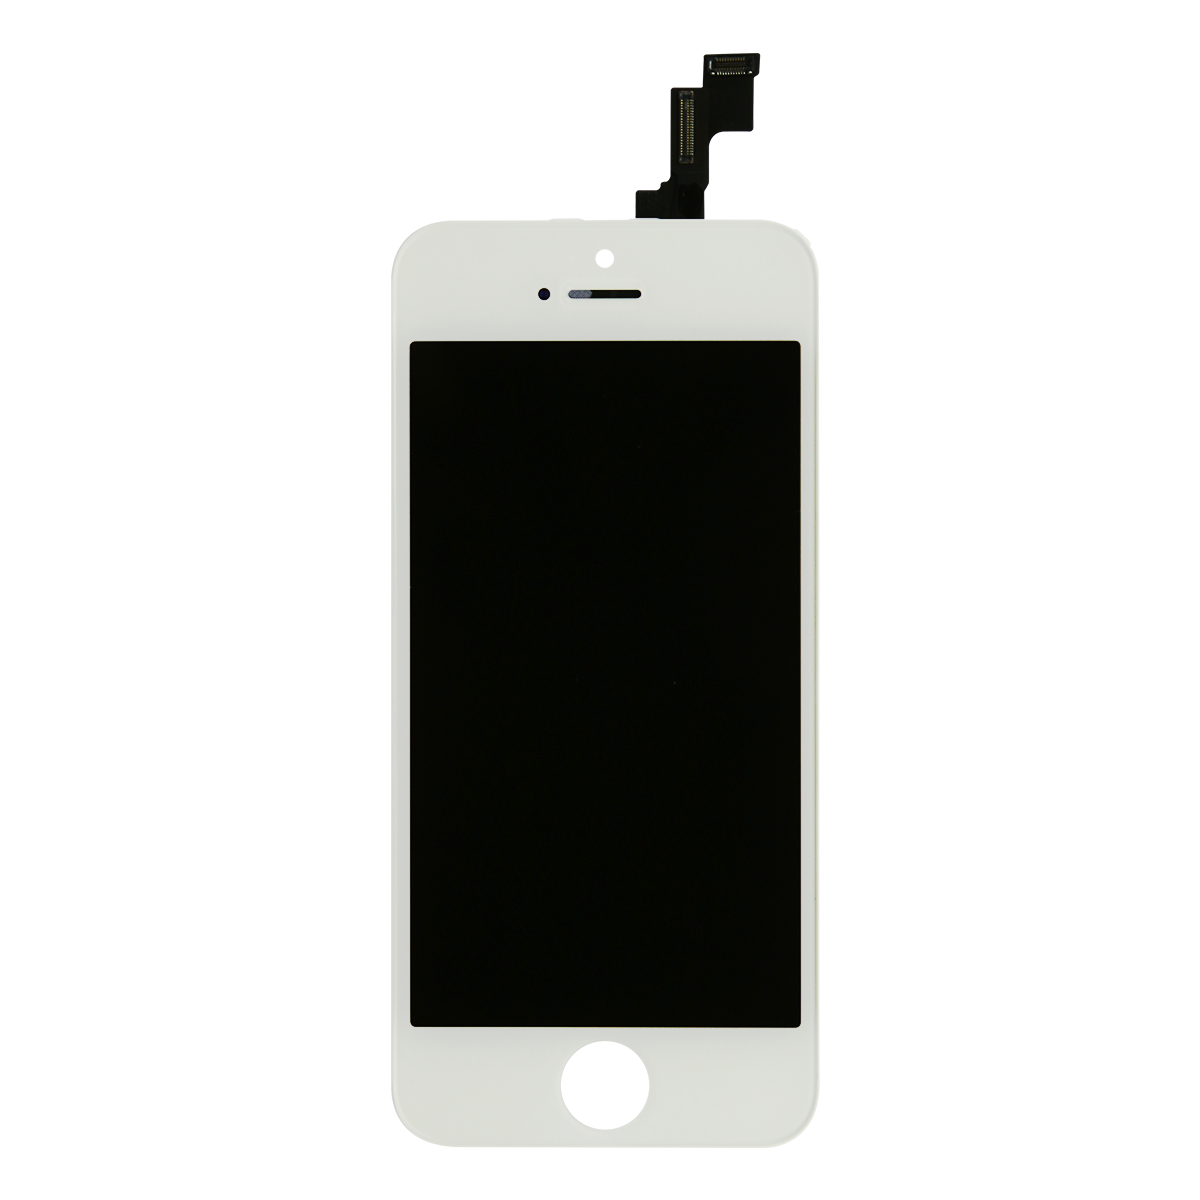 Iphone 5 white png. Cell phone repair parts